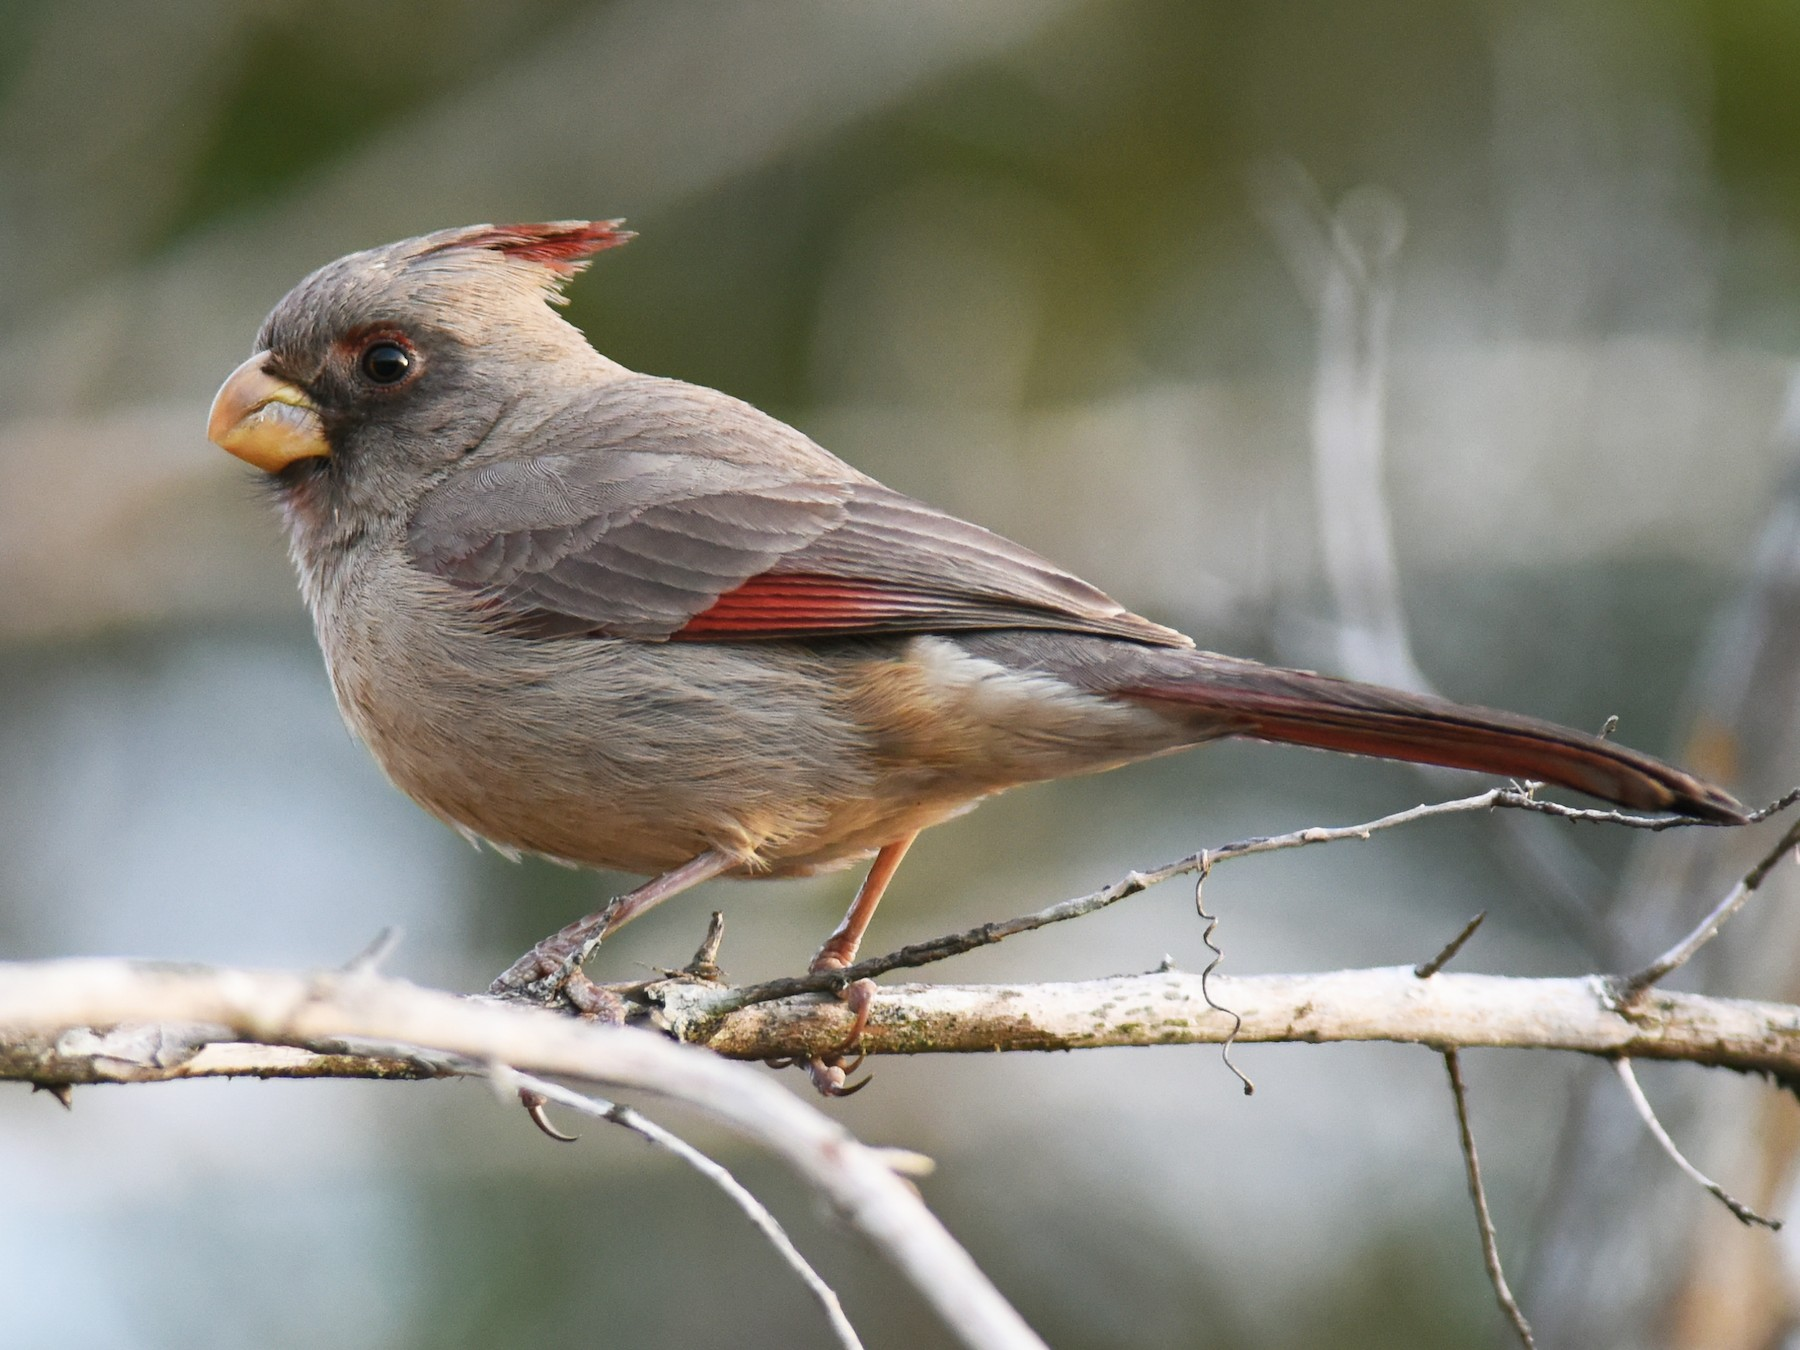 Pyrrhuloxia - Mike Charest